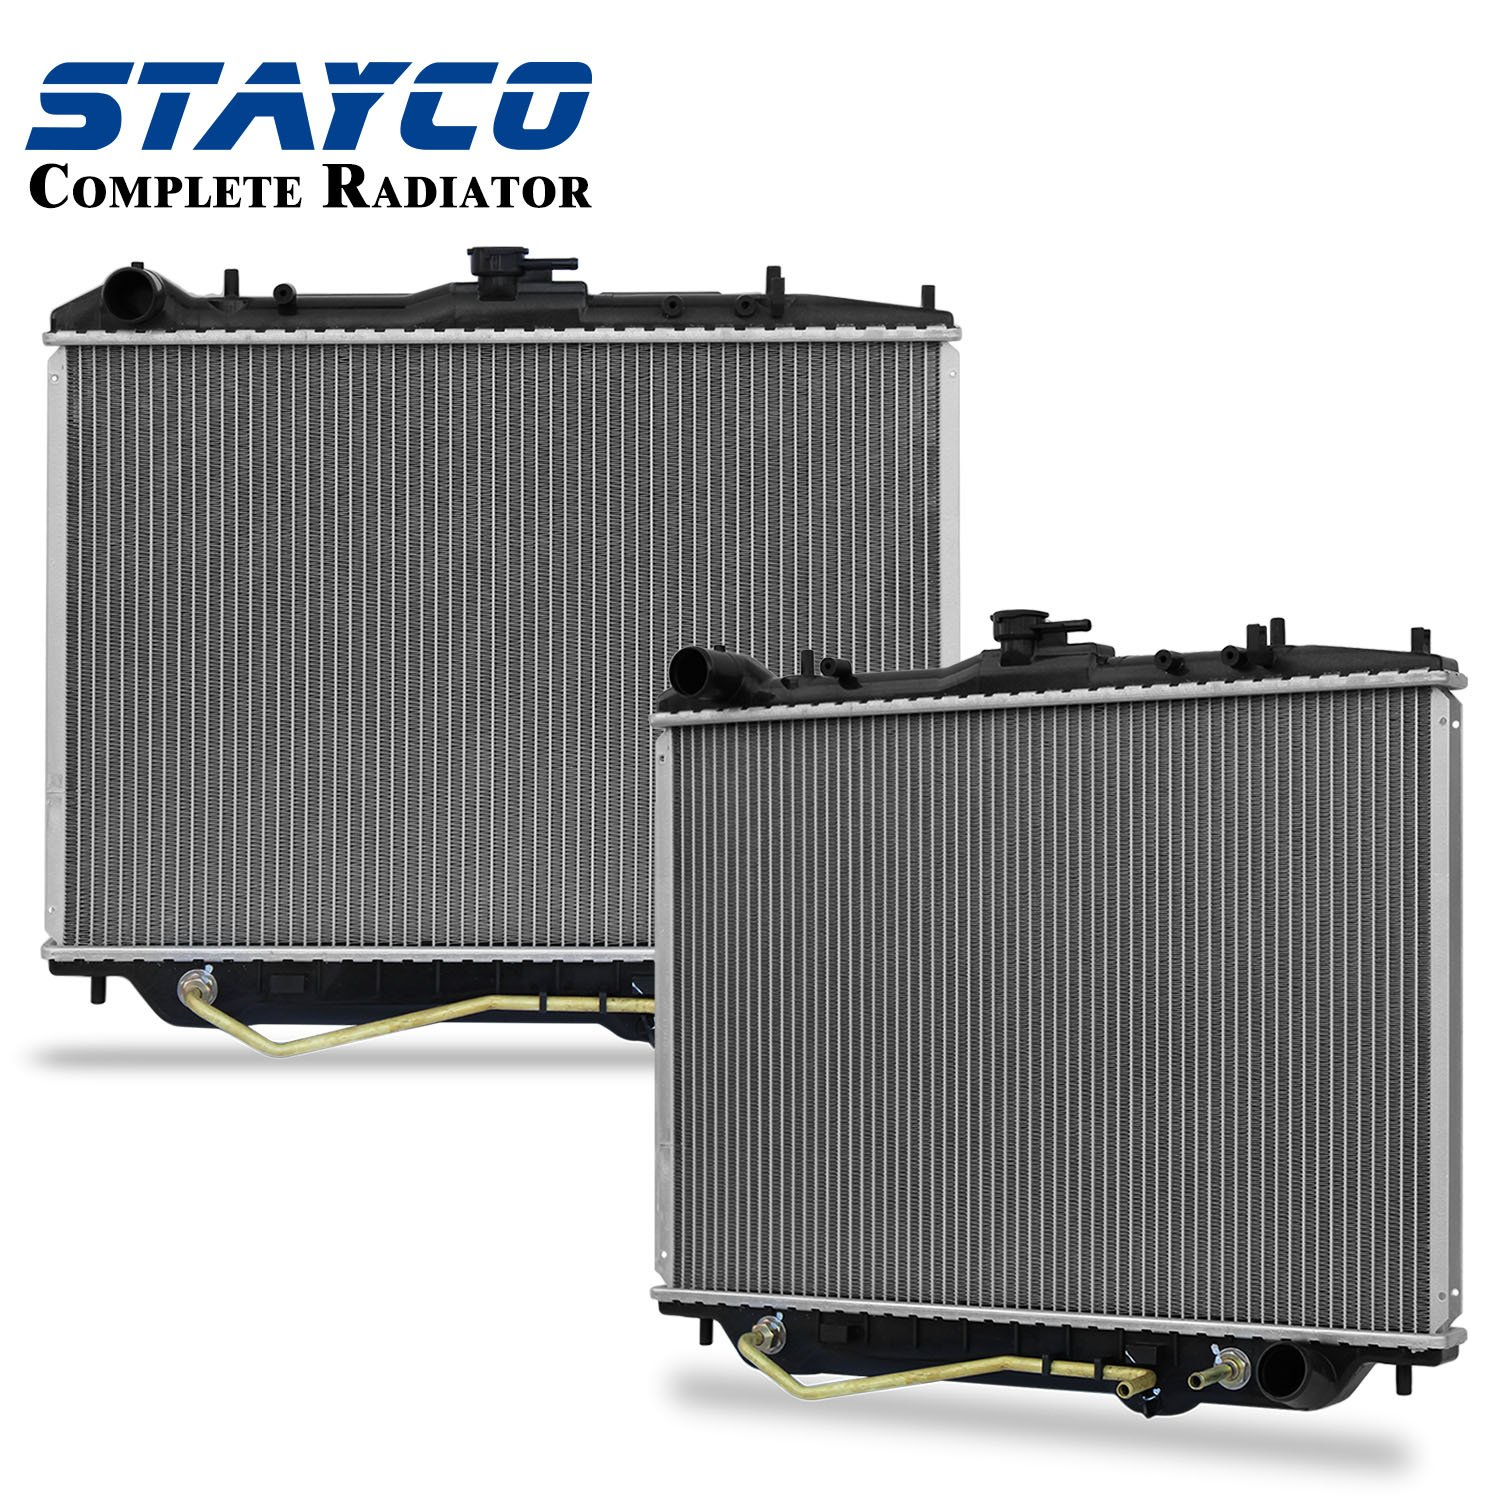 STAYCO Radiator 2195 for Isuzu Rodeo Sport Amigo Honda Passport 3.2L V6 by STAYCO